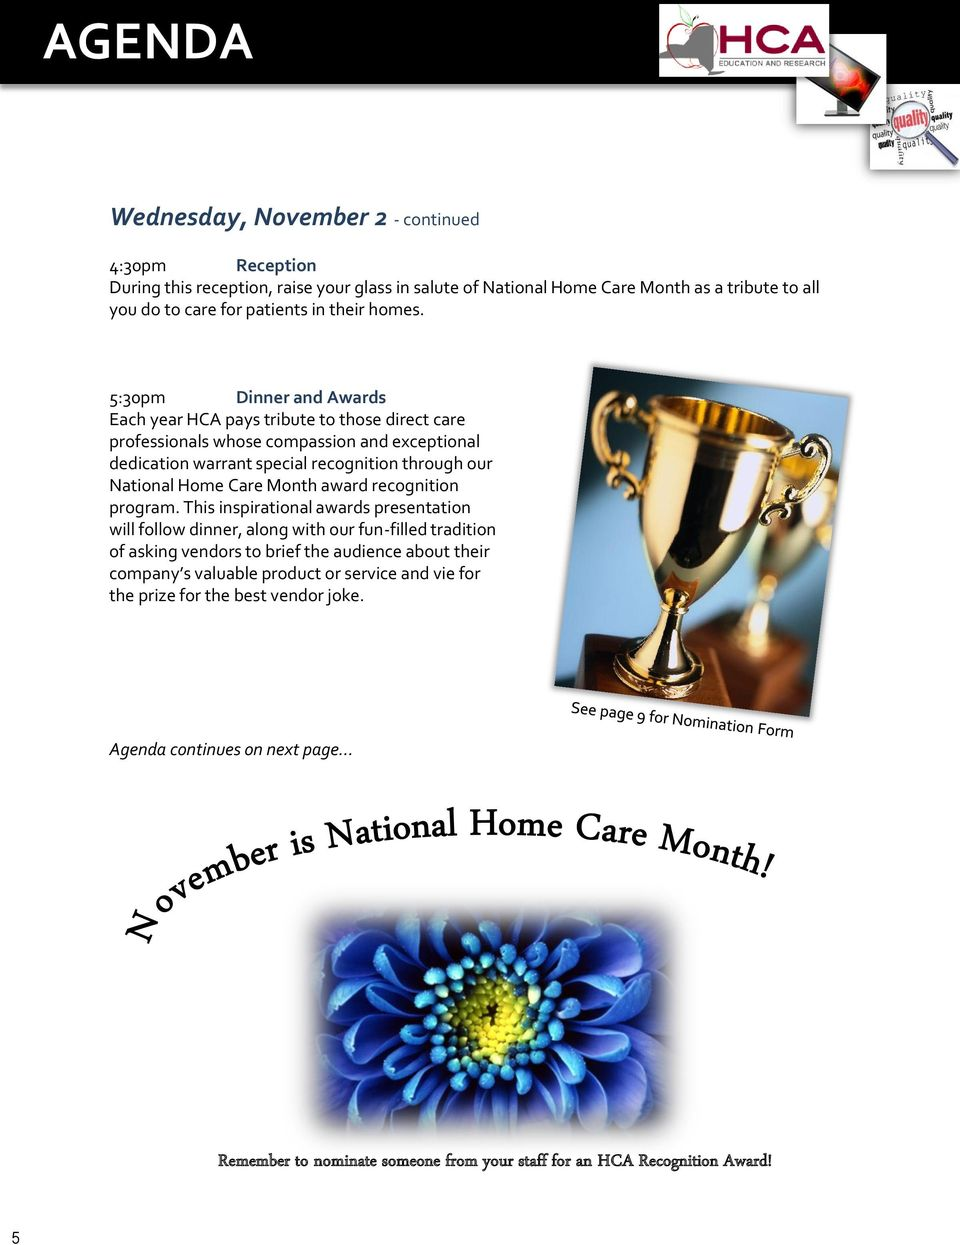 5:30pm Dinner and Awards Each year HCA pays tribute to those direct care professionals whose compassion and exceptional dedication warrant special recognition through our National Home Care